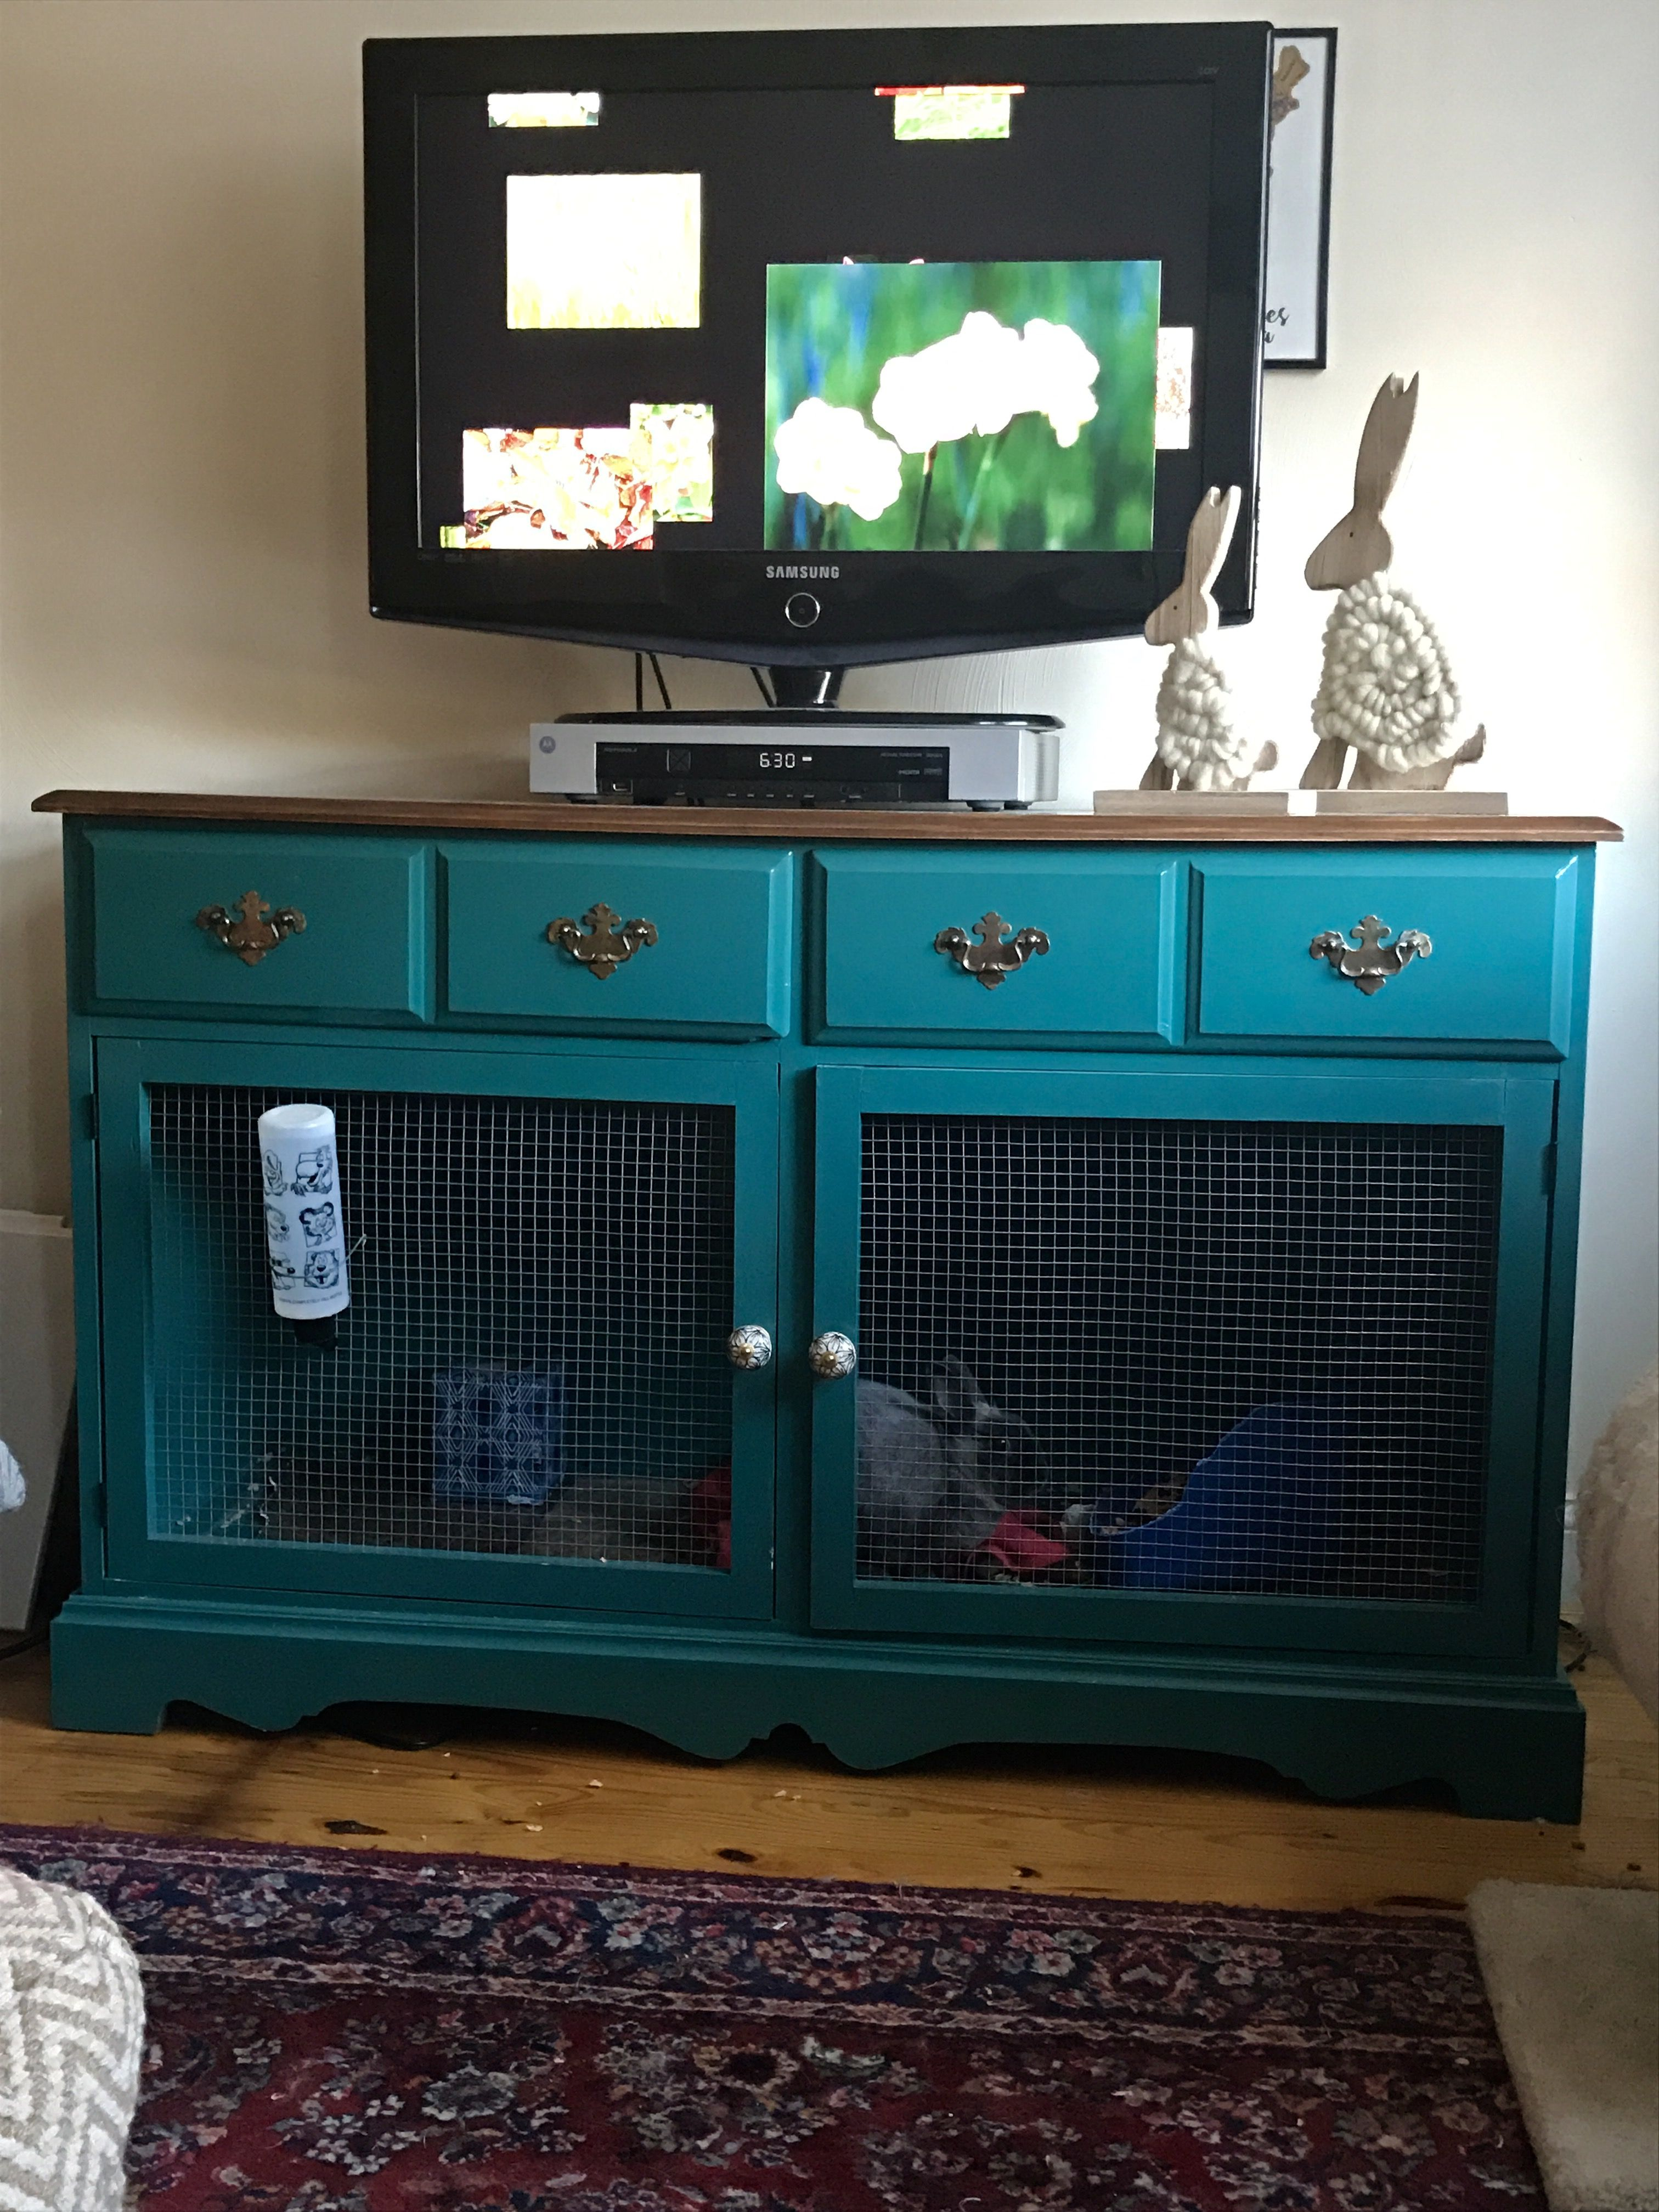 Refurbished an old dresser to become a bunny cage. Took out bottom ...